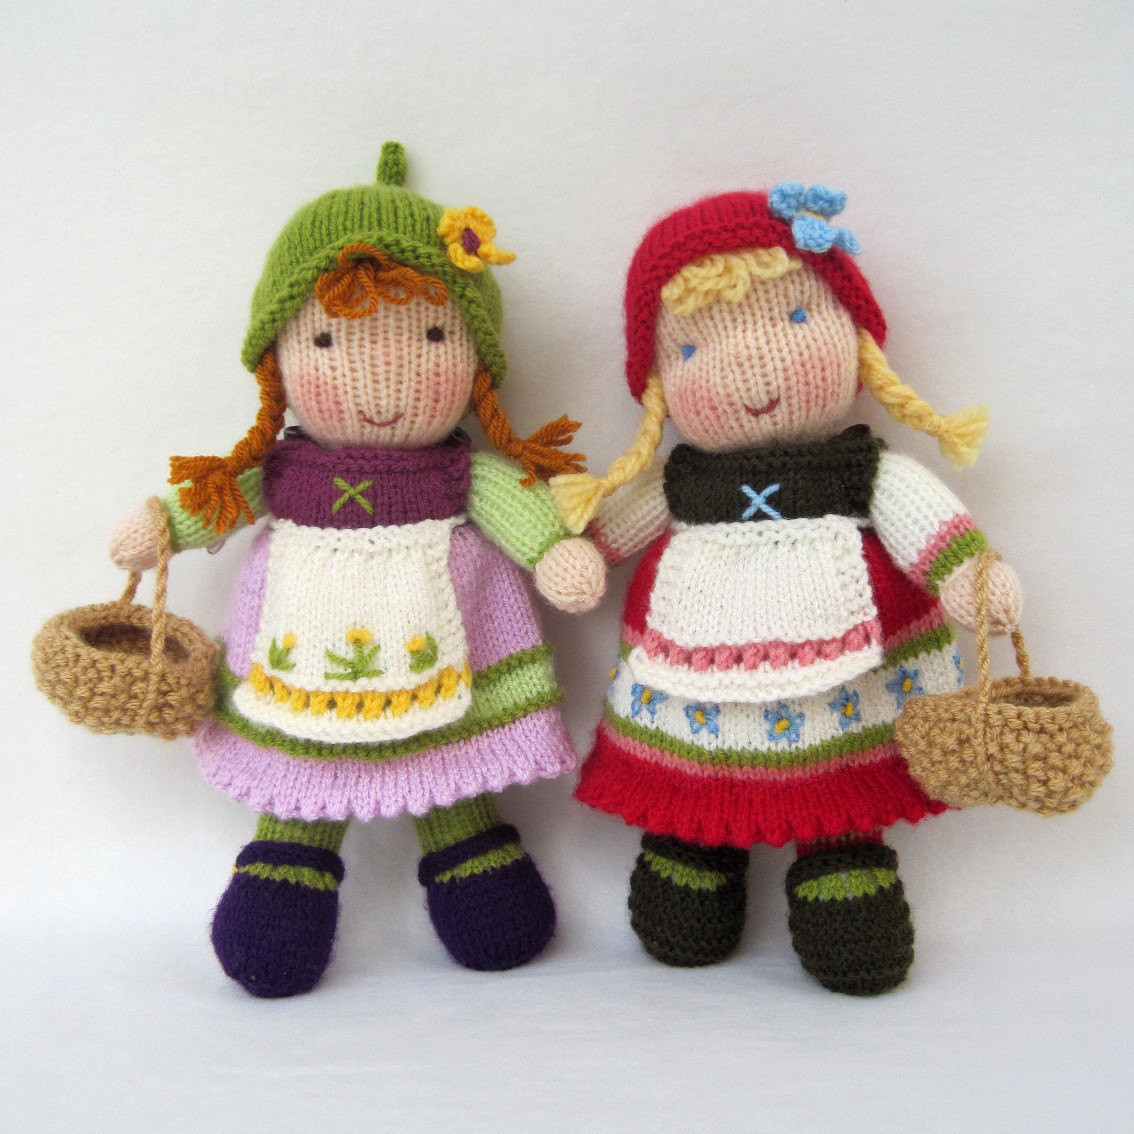 Knitting Patterns toys New Fern and Flora Pdf Email toy Doll Knitting Pattern Of Amazing 41 Models Knitting Patterns toys